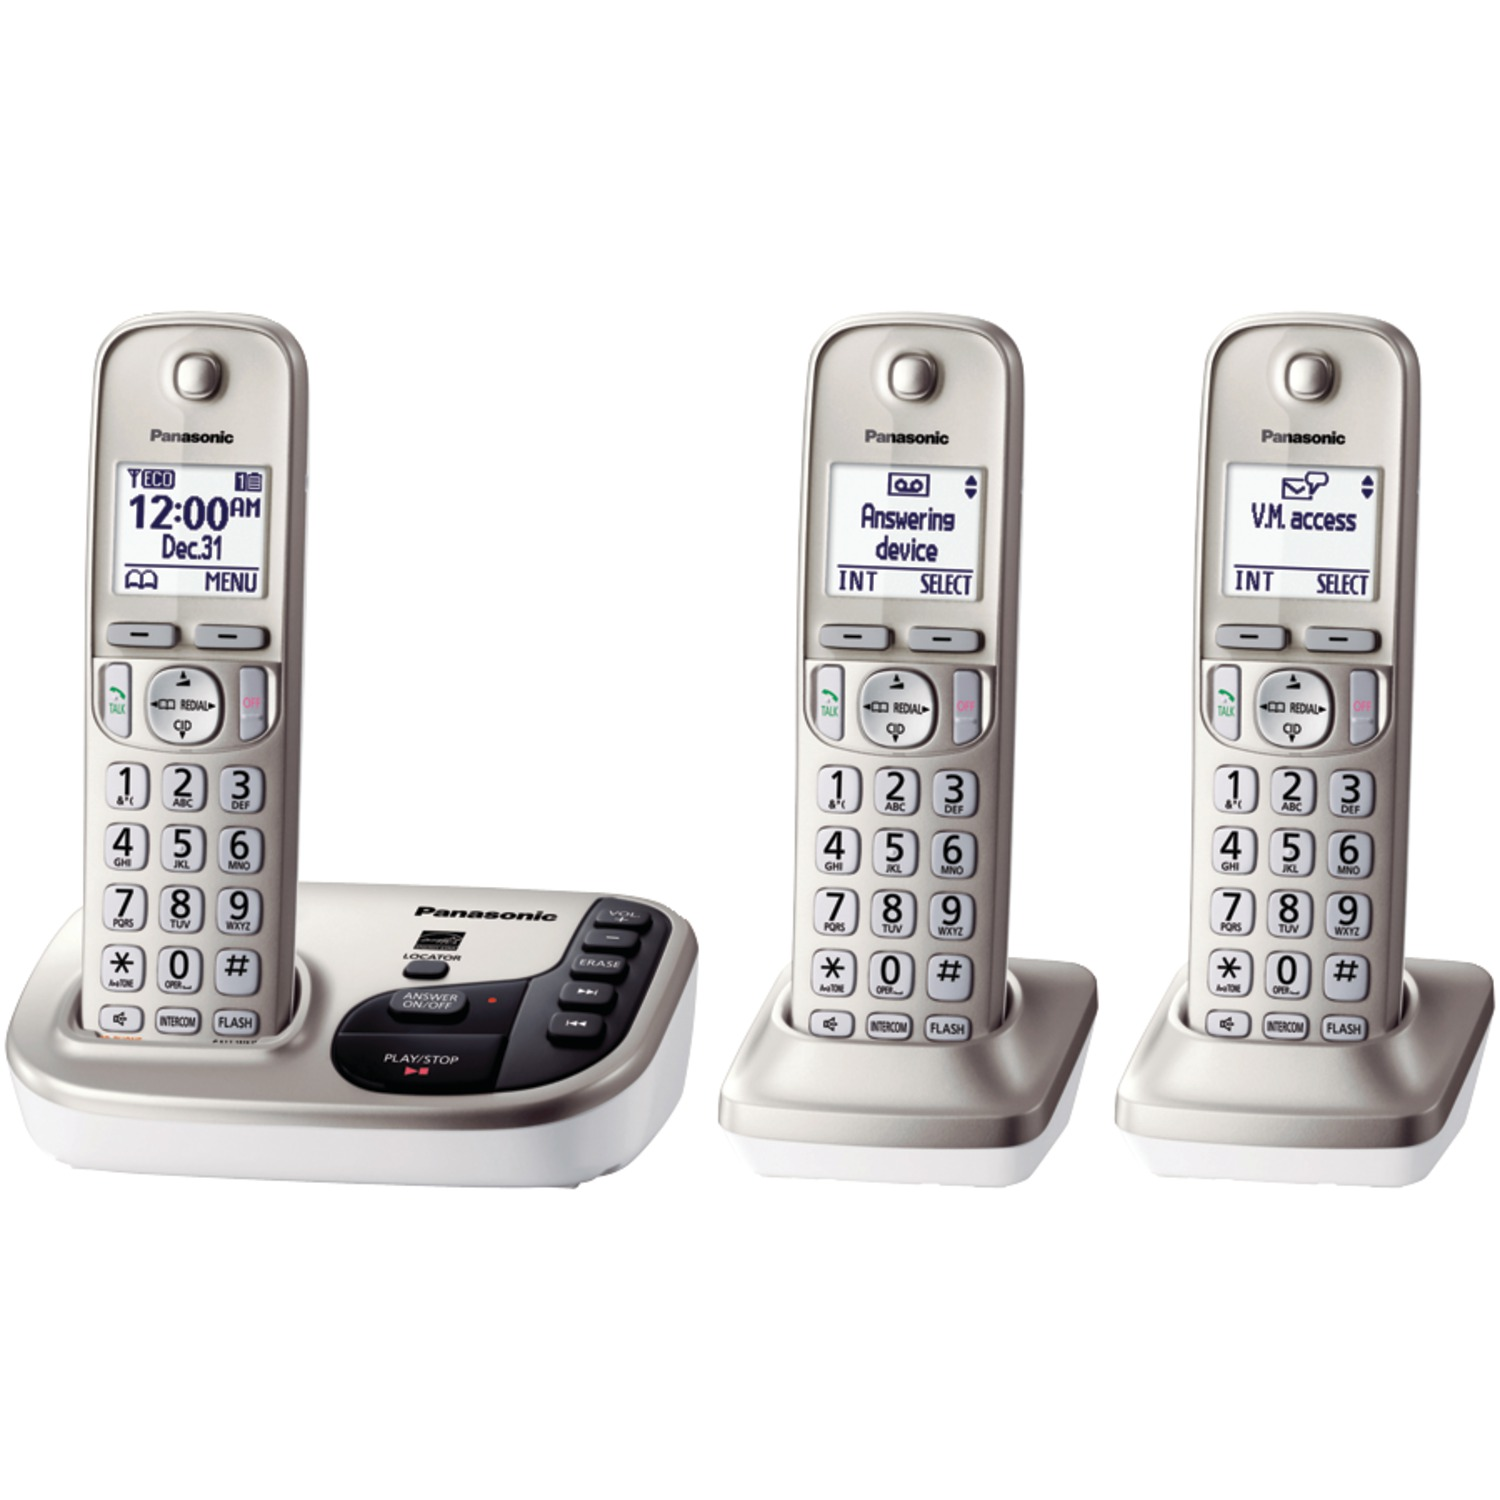 Panasonic Kx-tgd223n Dect 6.0 Plus Expandable Digital Cordless Answering System (3-handset System) by Panasonic